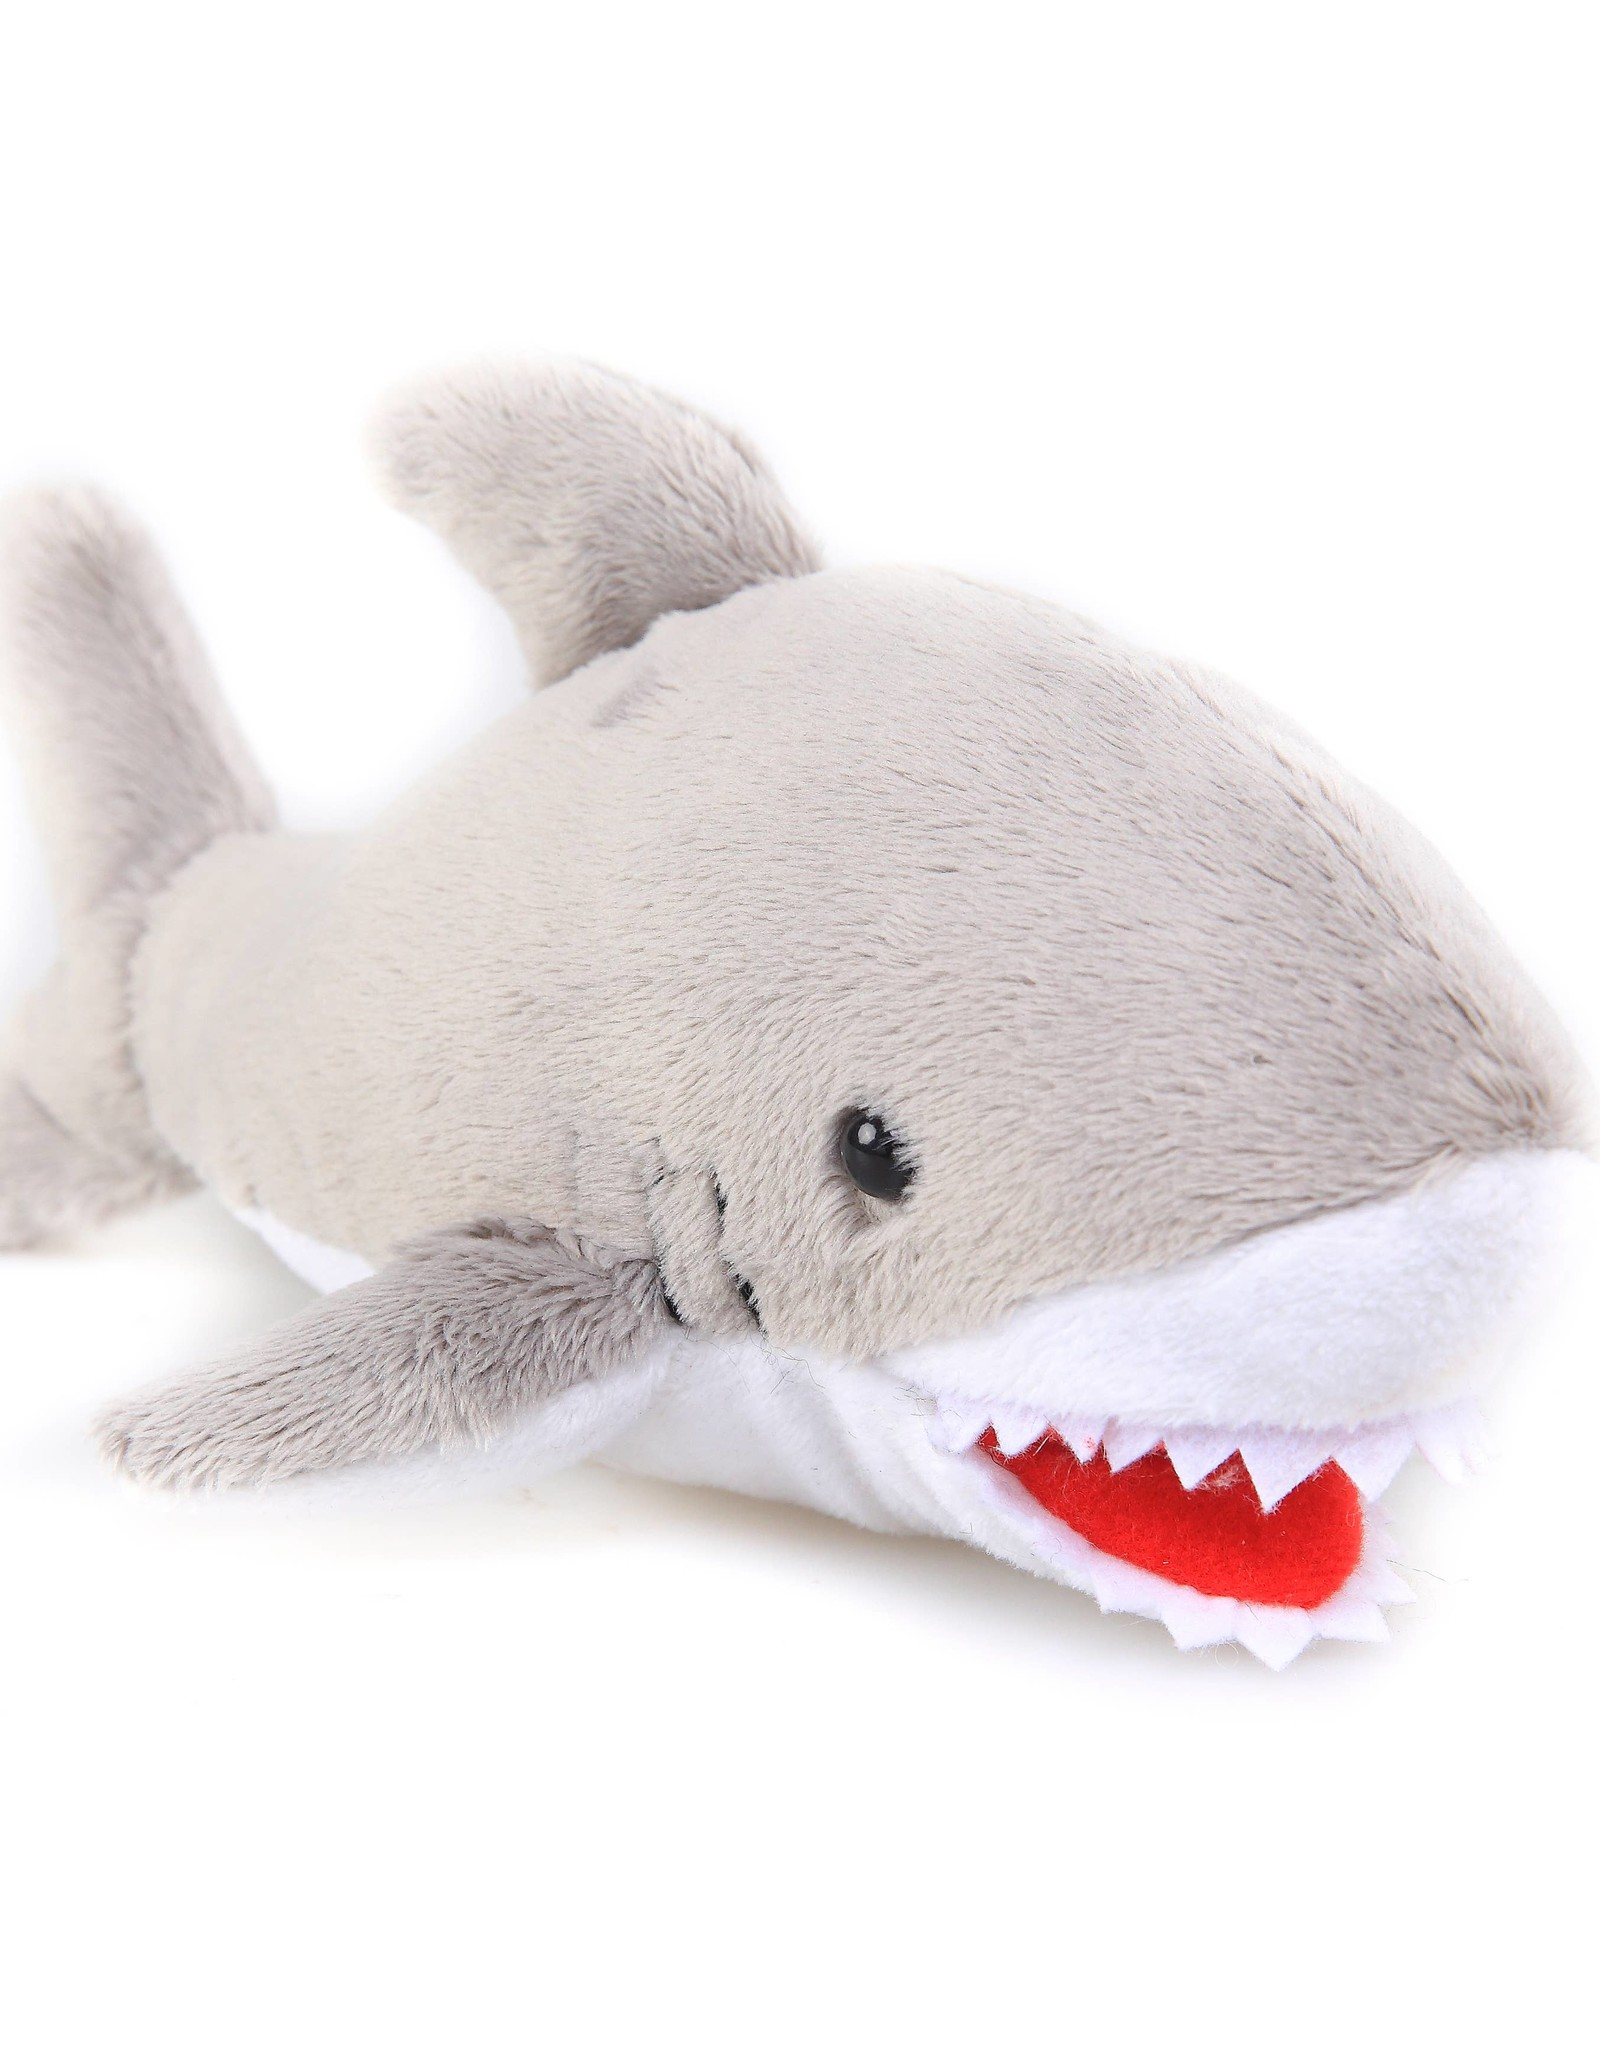 Plushland Shark Bean Bag Plush